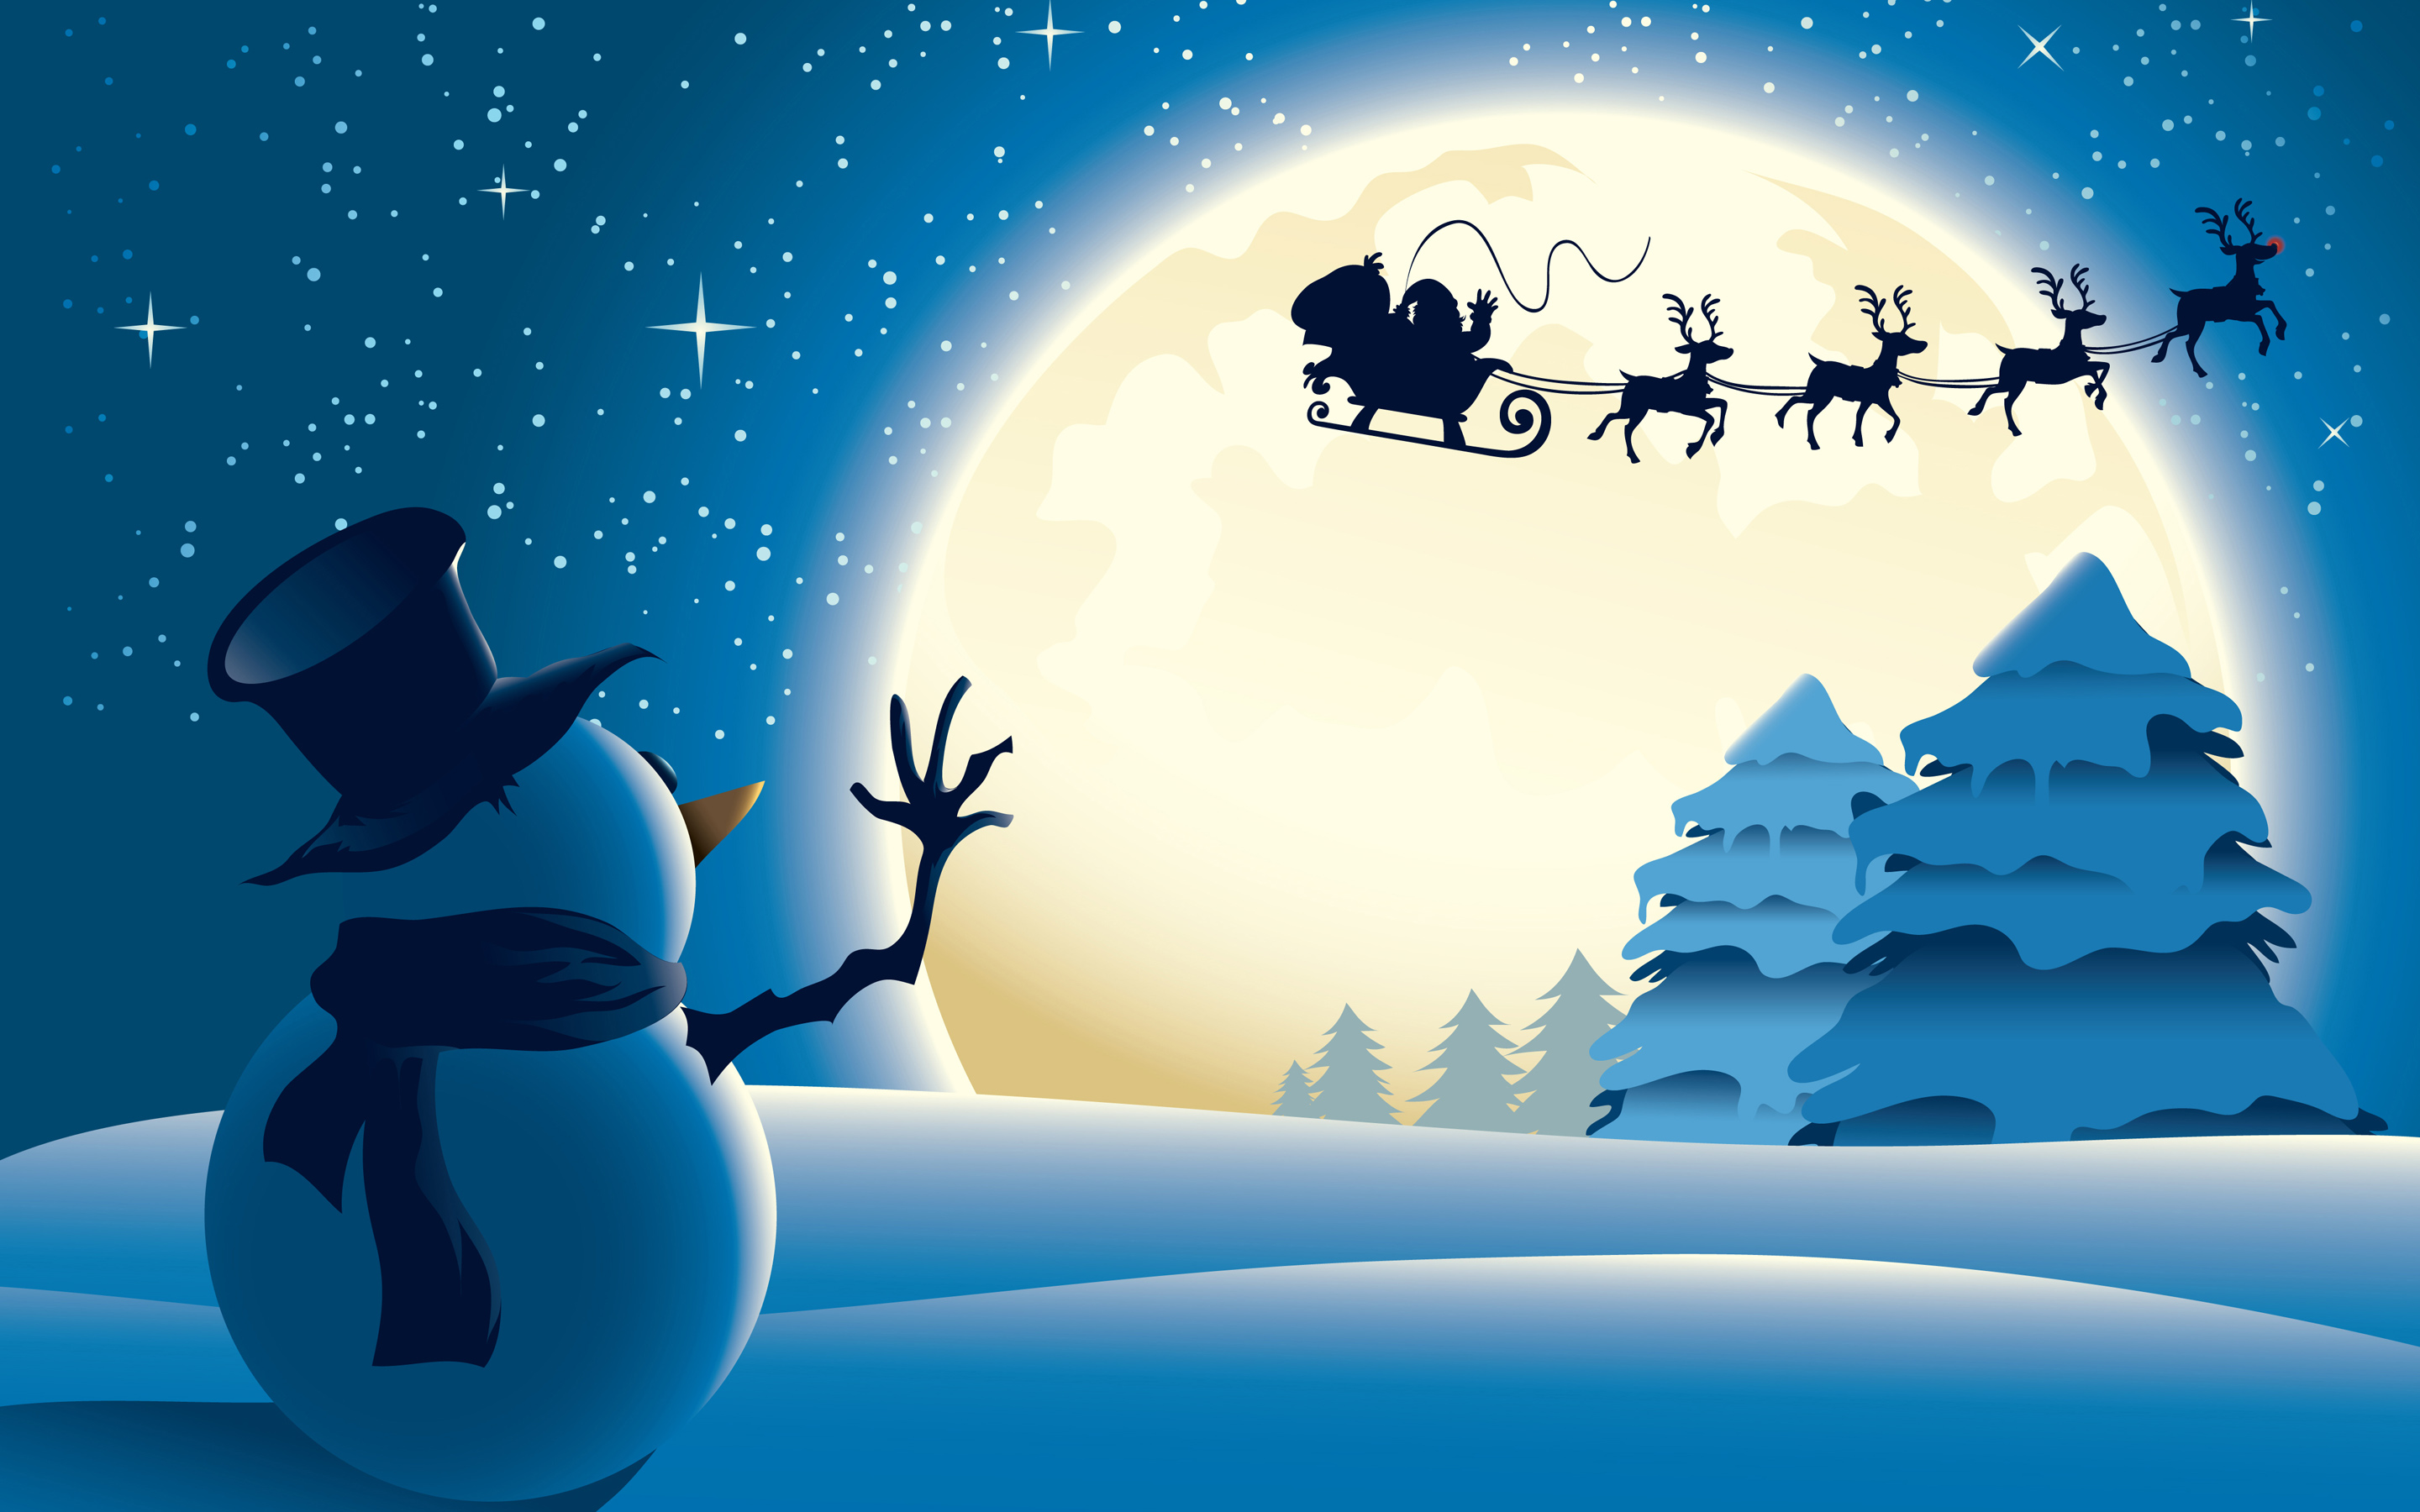 Snowman Santa Claus Christmas HD Wallpaper 2880x1800